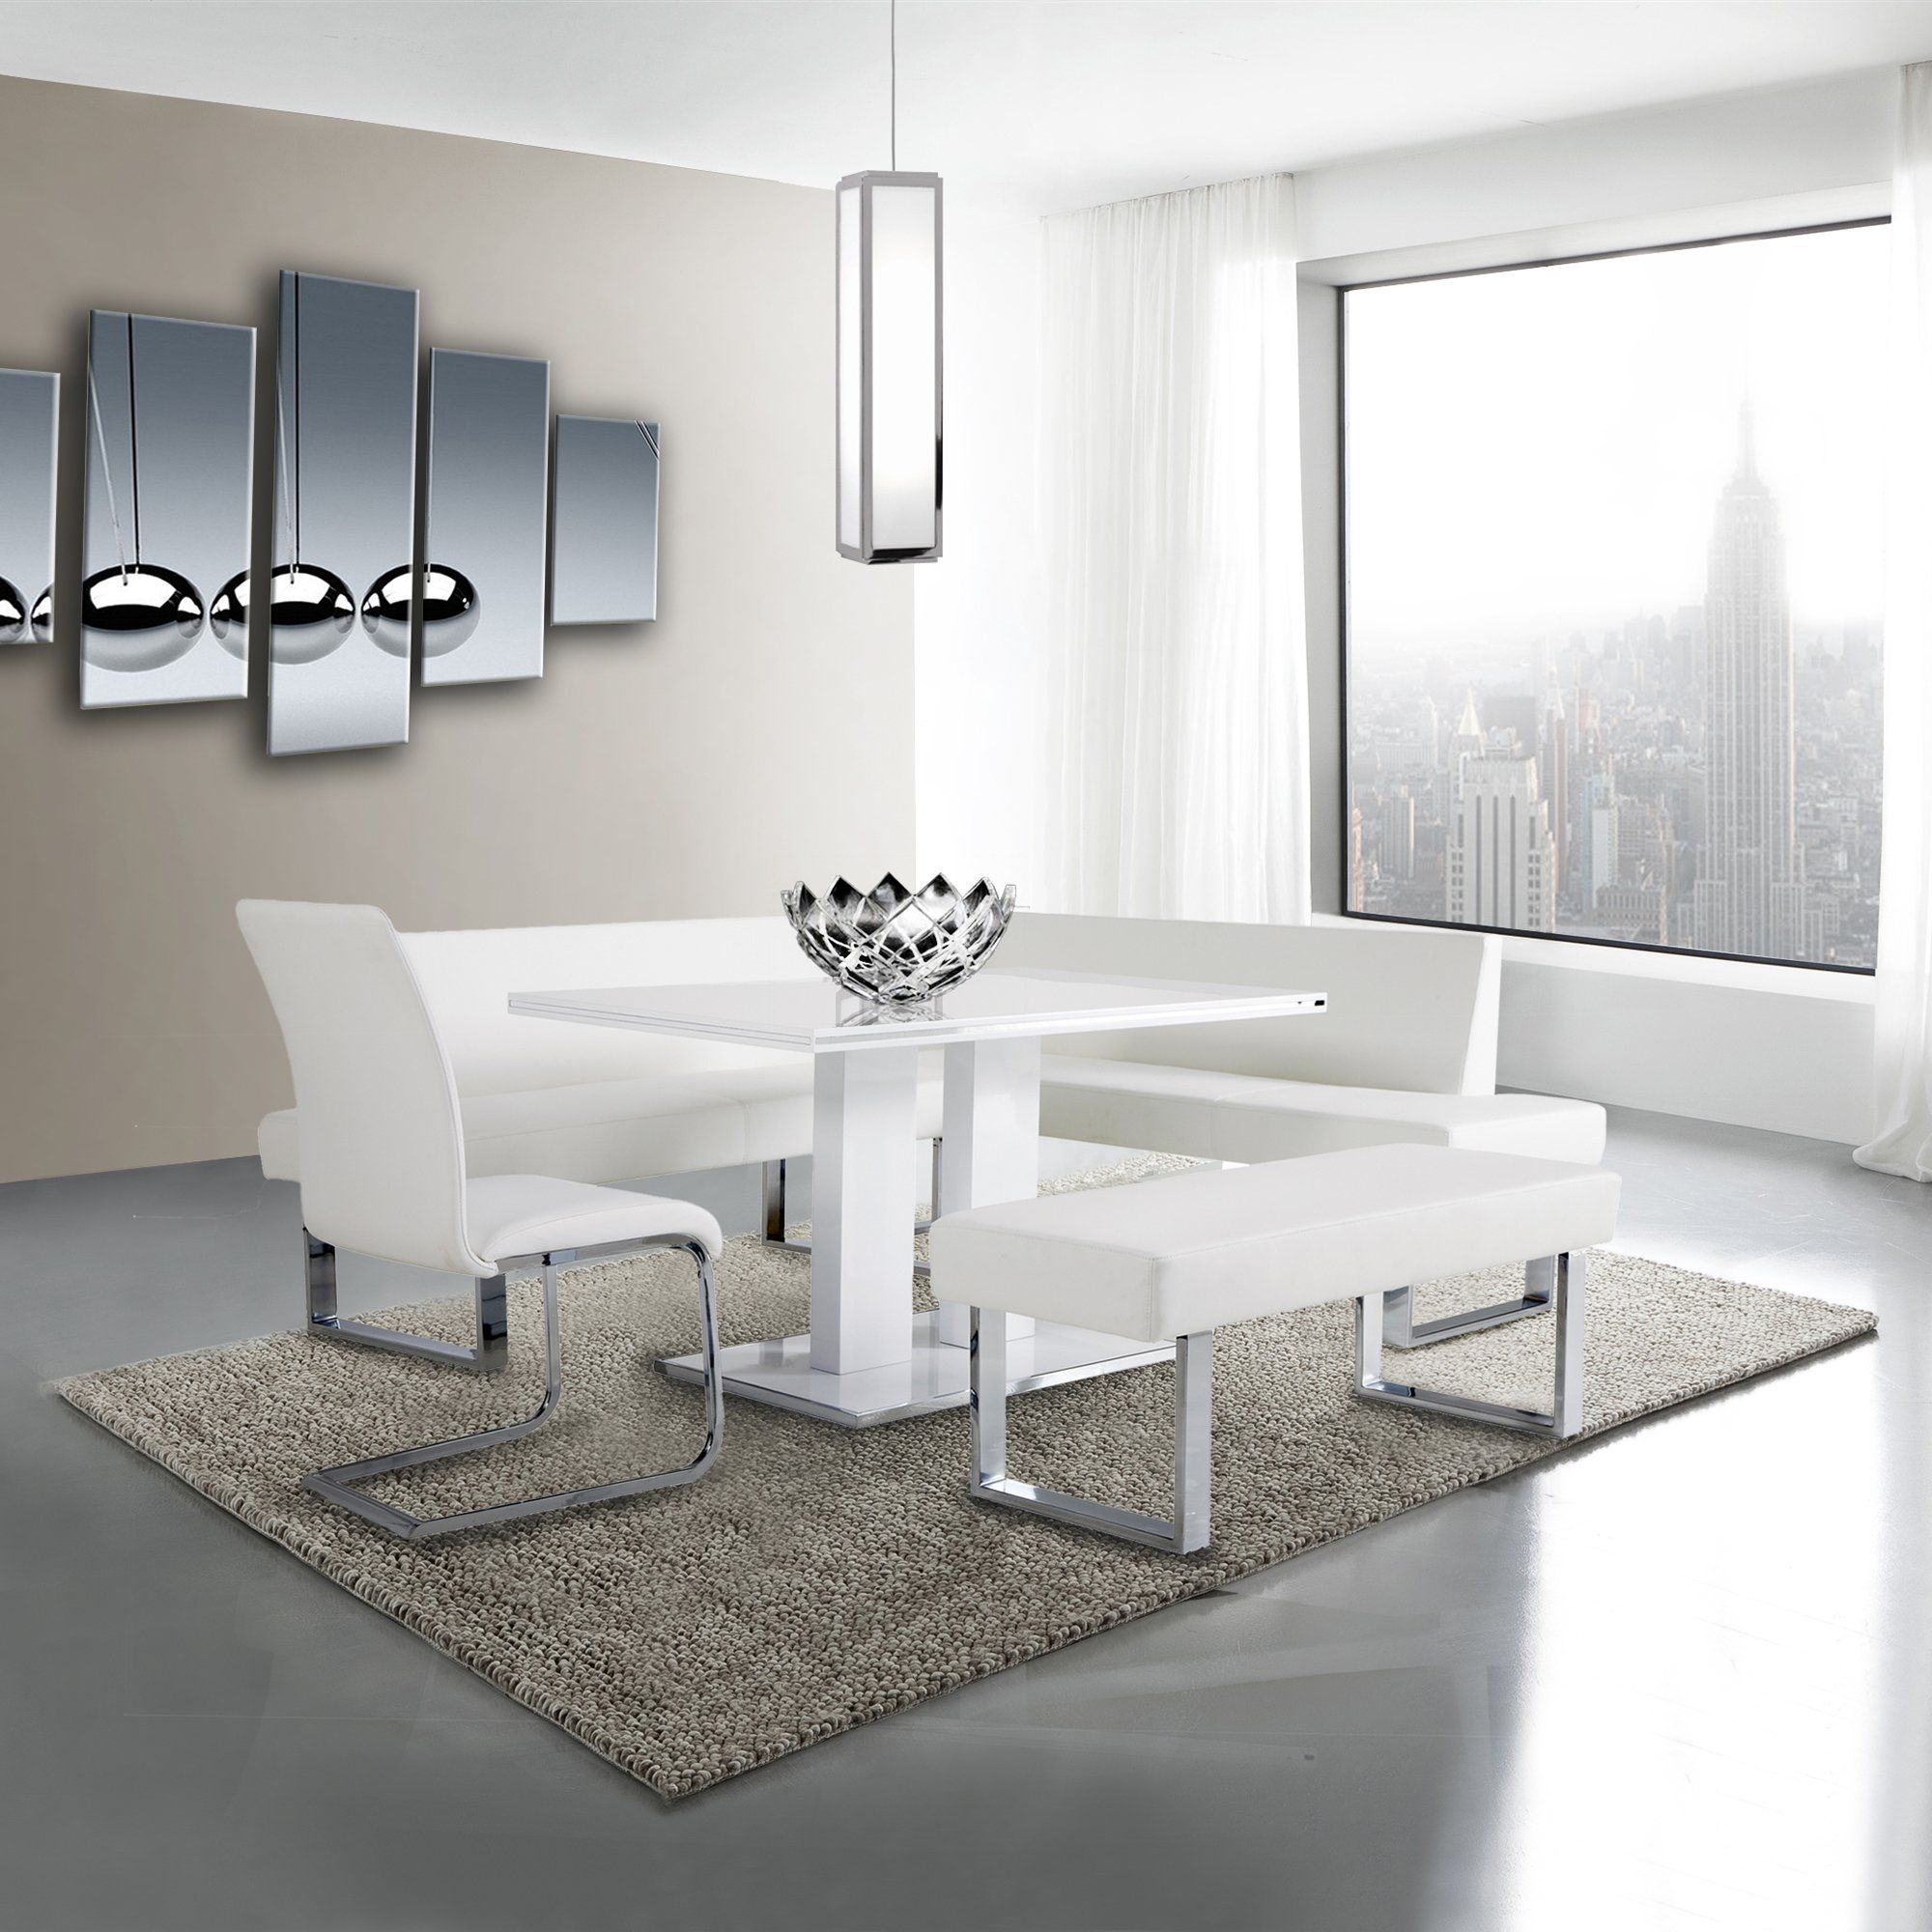 Robb Dining Table Dining Table With Bench Dining Table Dining Room Table